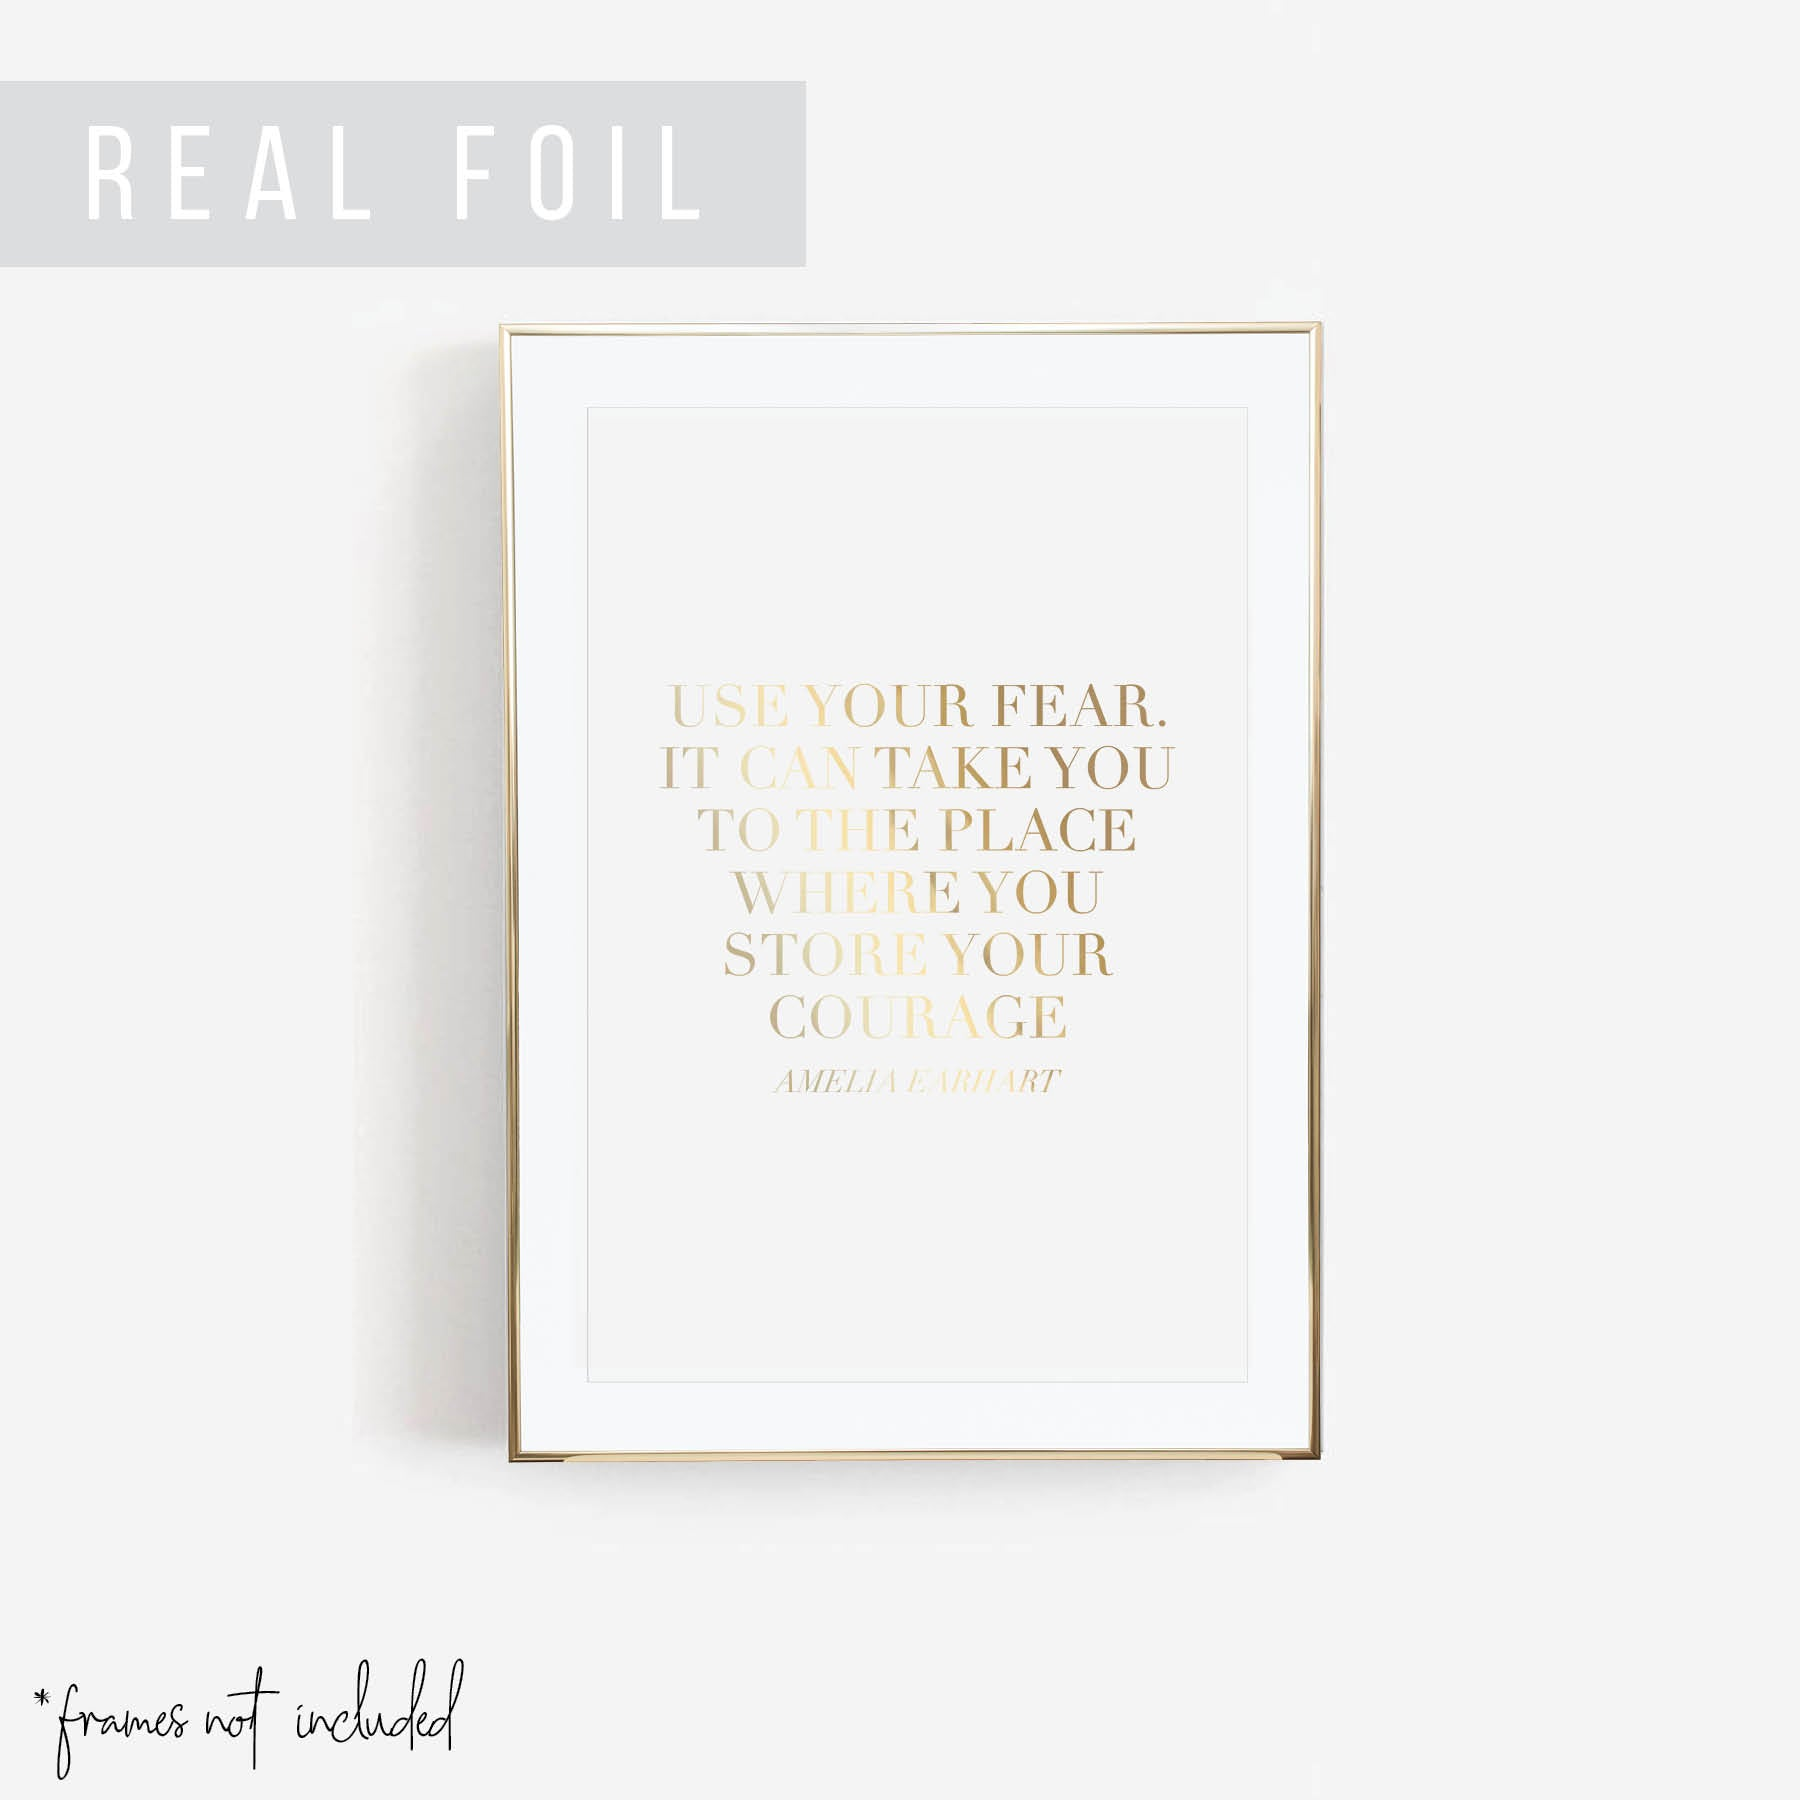 Use Your Fear. It Can Take You to the Place Where You Store Your Courage. -Amelia Earhart Quote Foiled Art Print